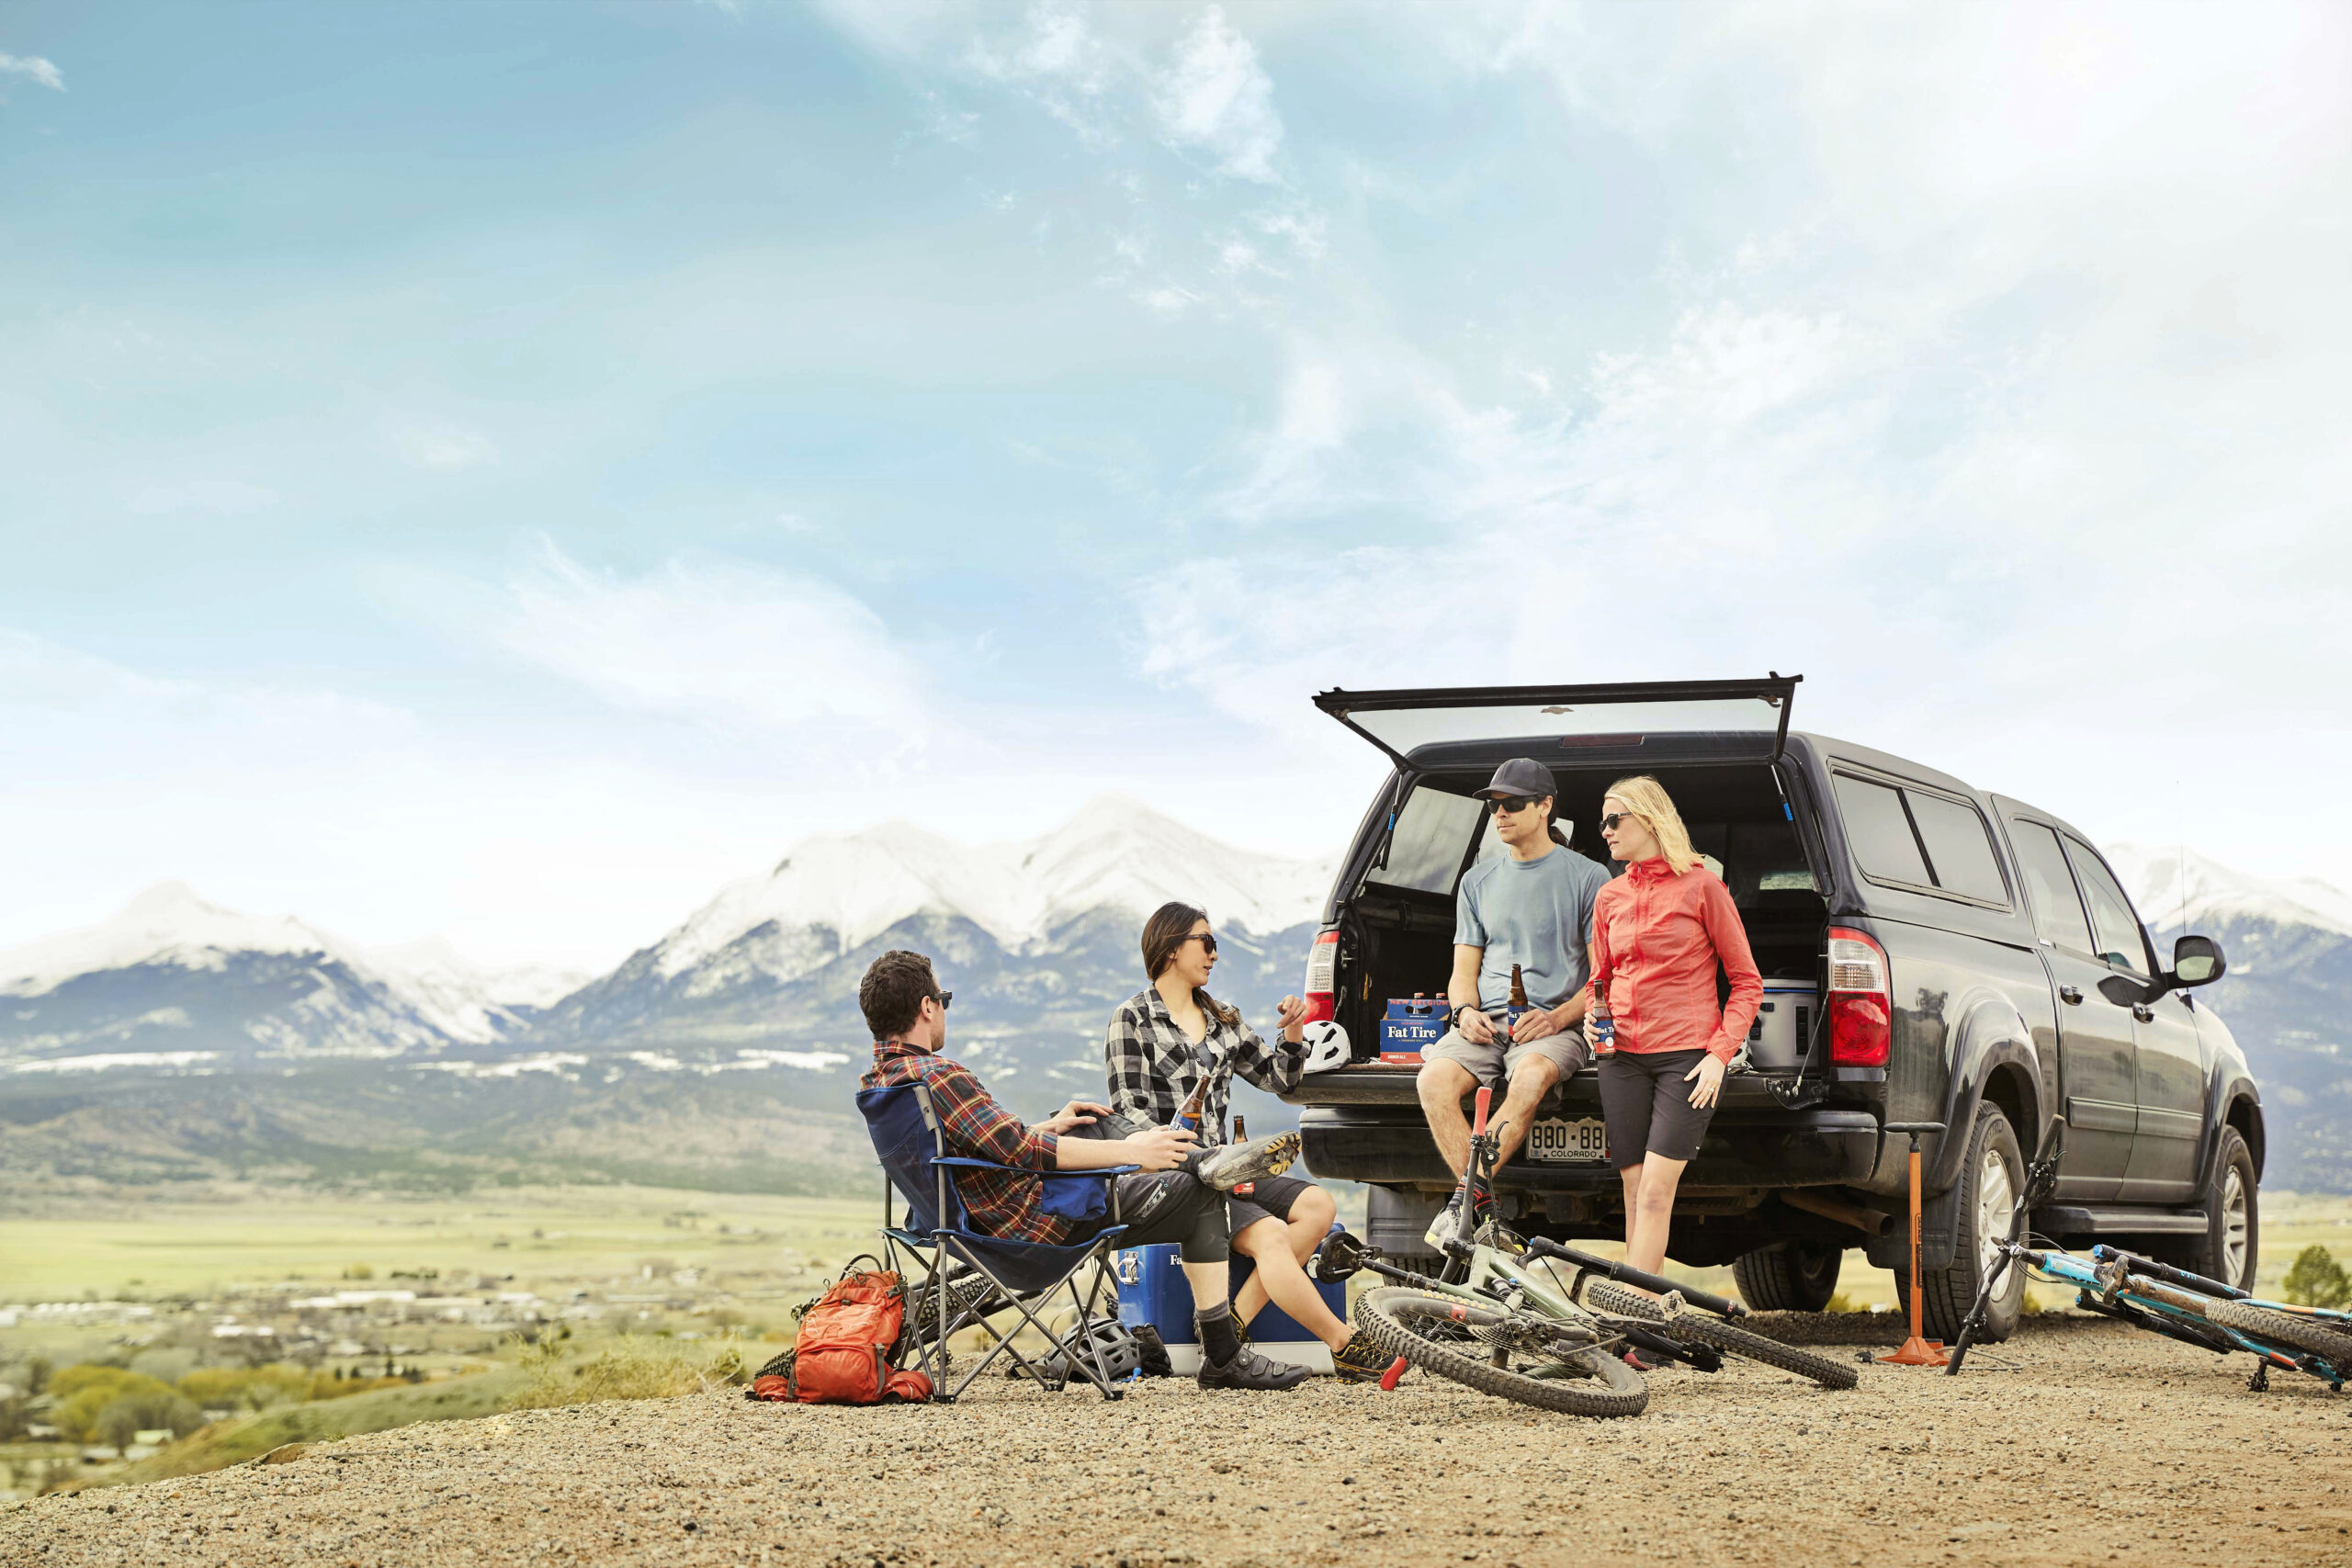 Andrew Maguire photographs bikers and hikers for a Fat Tire campaign in Colorado for New Belgium Brewing.